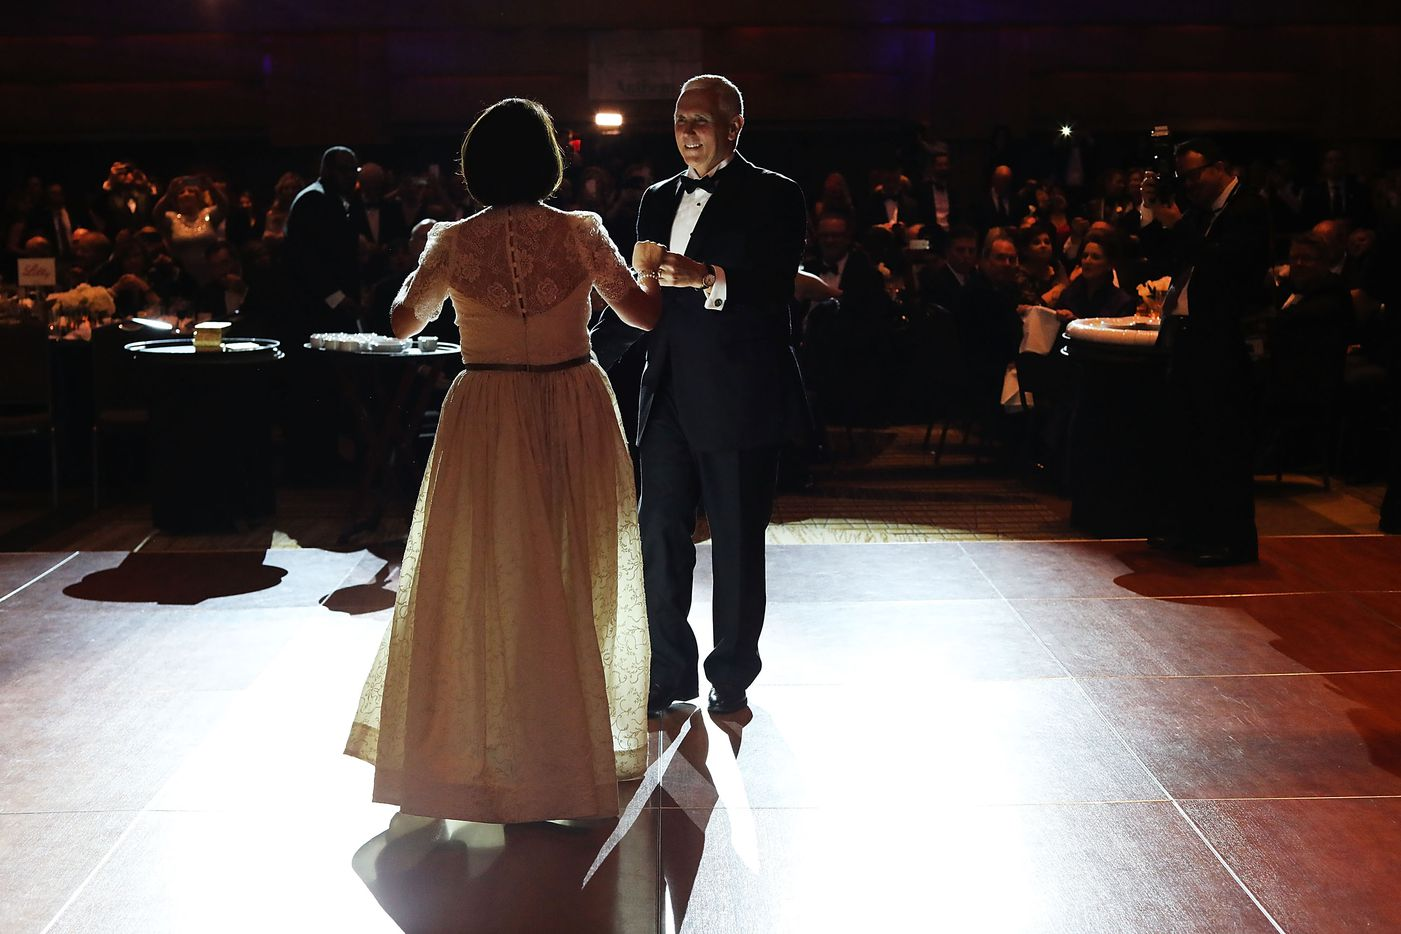 WASHINGTON, DC - JANUARY 19:  Vice President-elect Mike Pence and his wife Karen Pence take the first dance at the Indiana Society Ball on January 19, 2017 in Washington, DC. Washington and the entire nation is preparing for the transfer of the United States presidency tomorrow as Donald Trump is sworn in as the 45th president January 20.  (Photo by Spencer Platt/Getty Images)